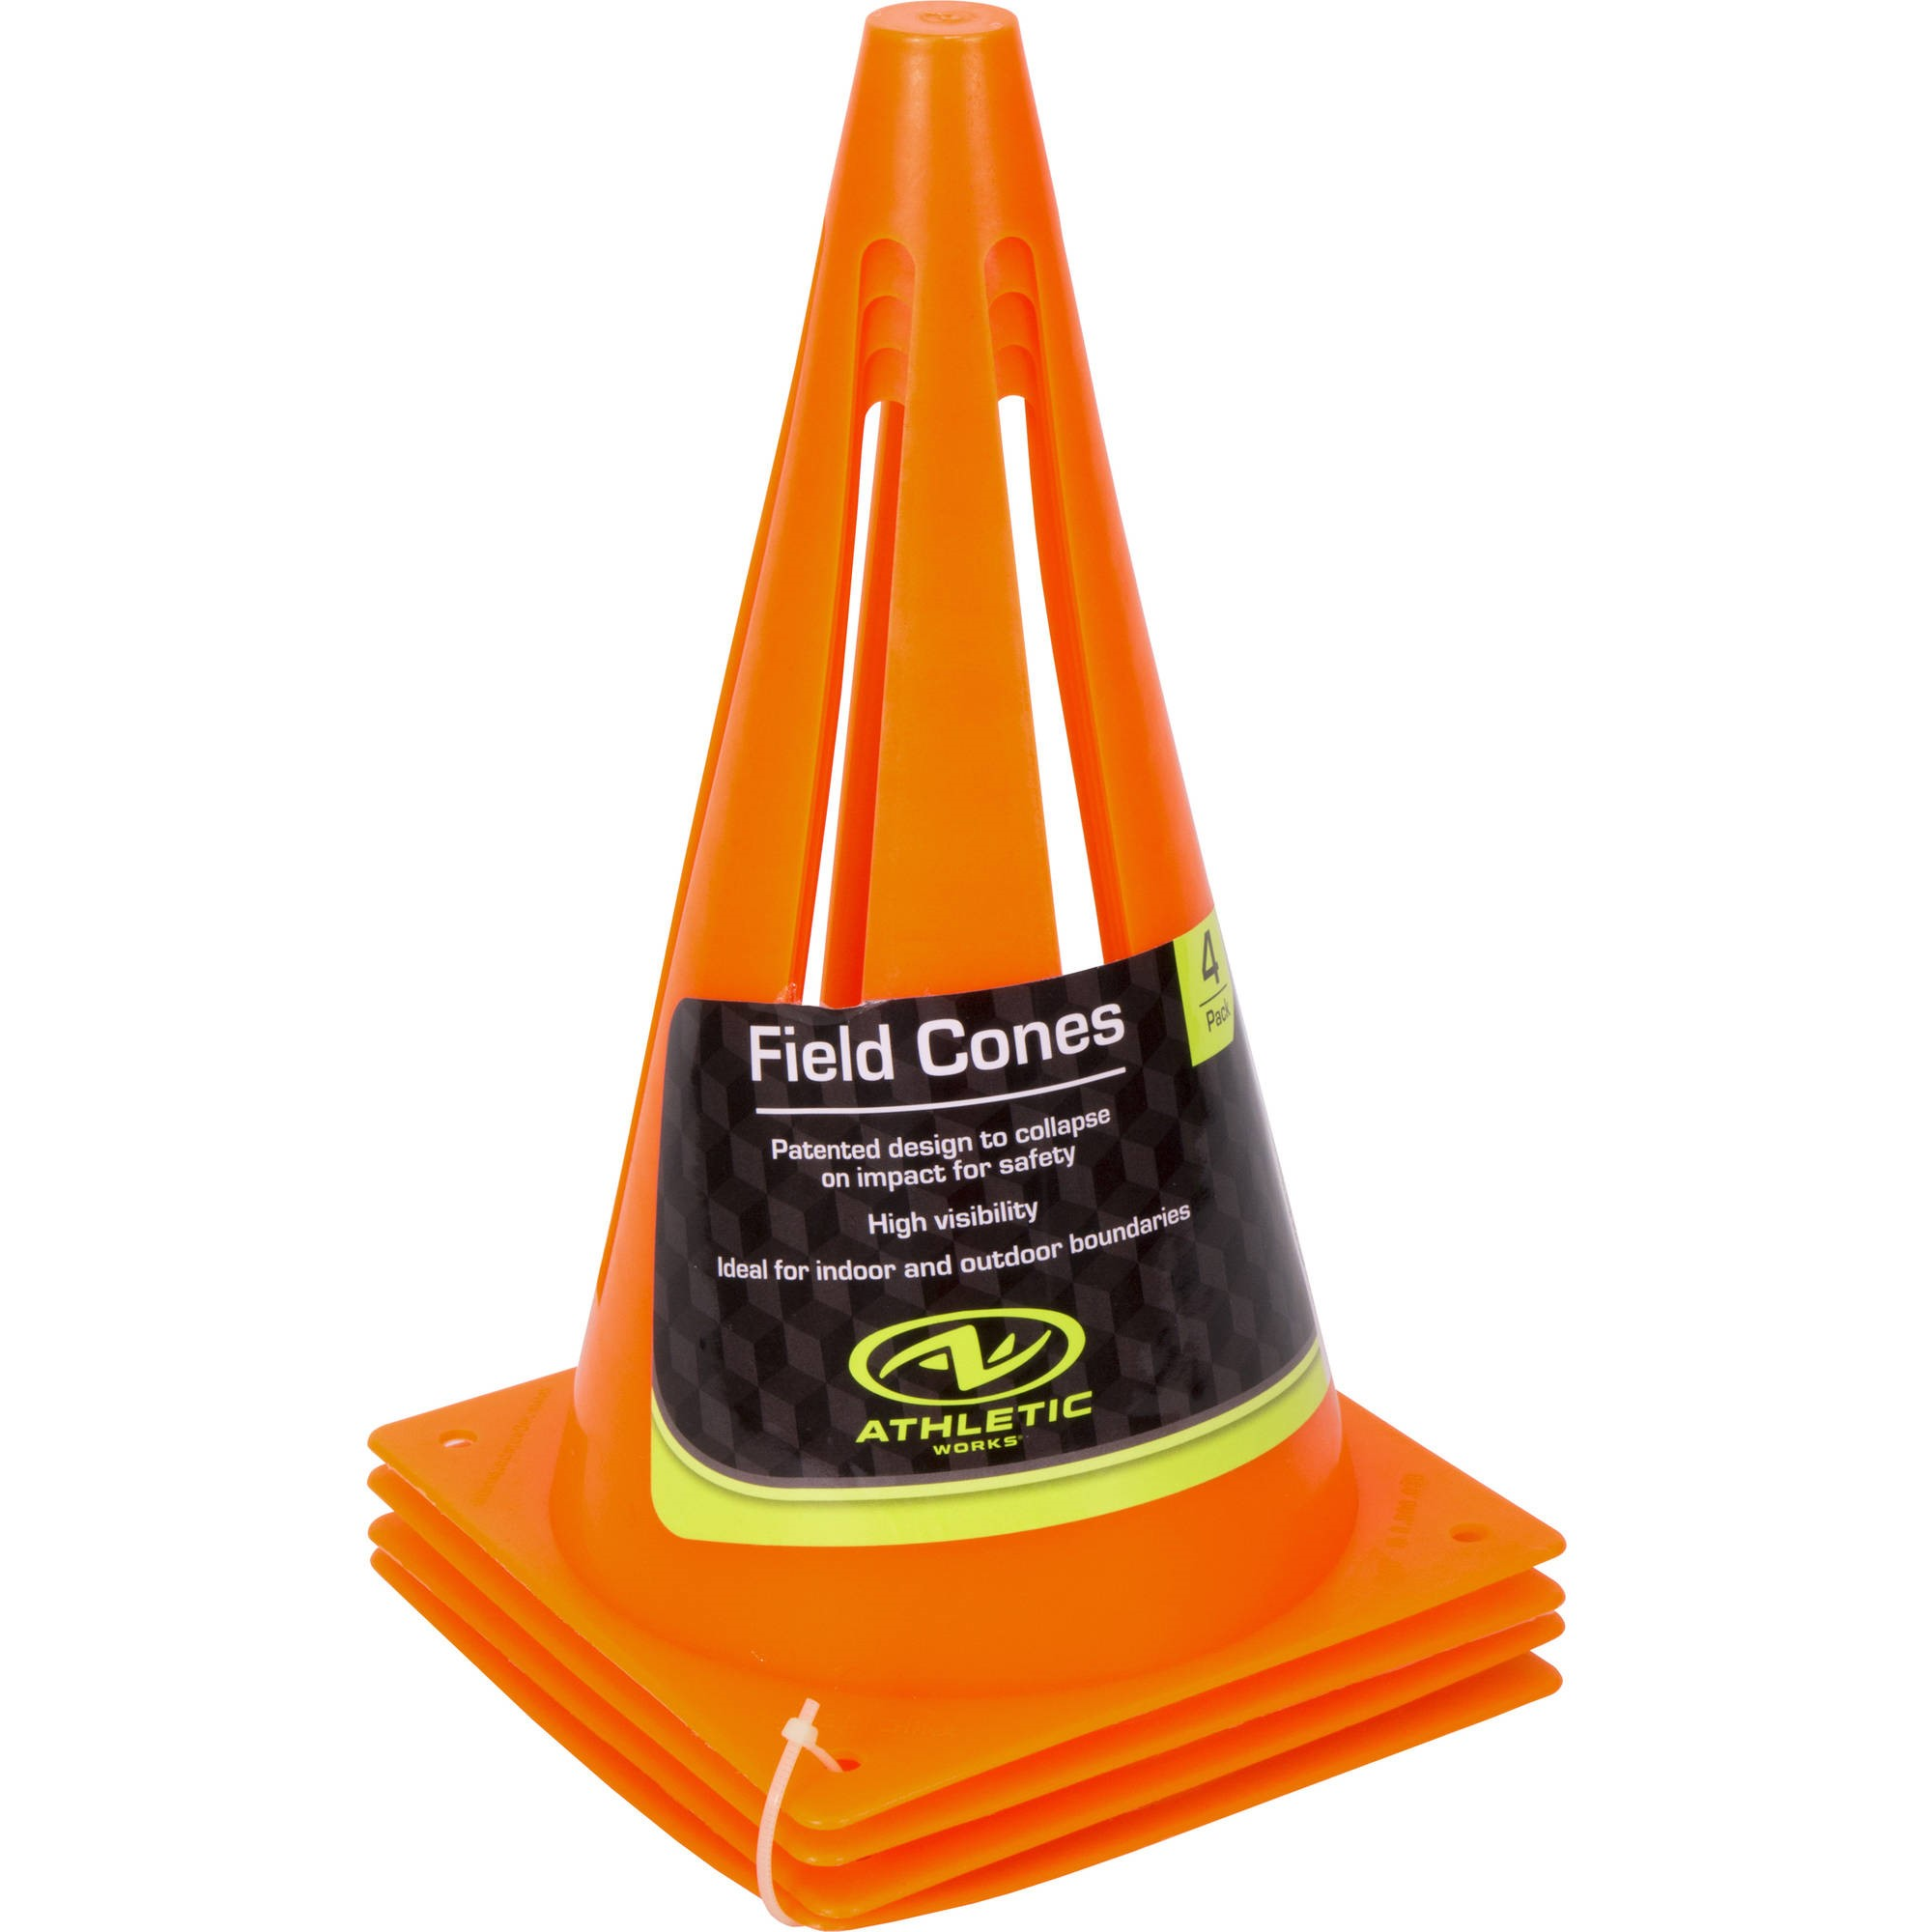 Athletic Works Field Cones